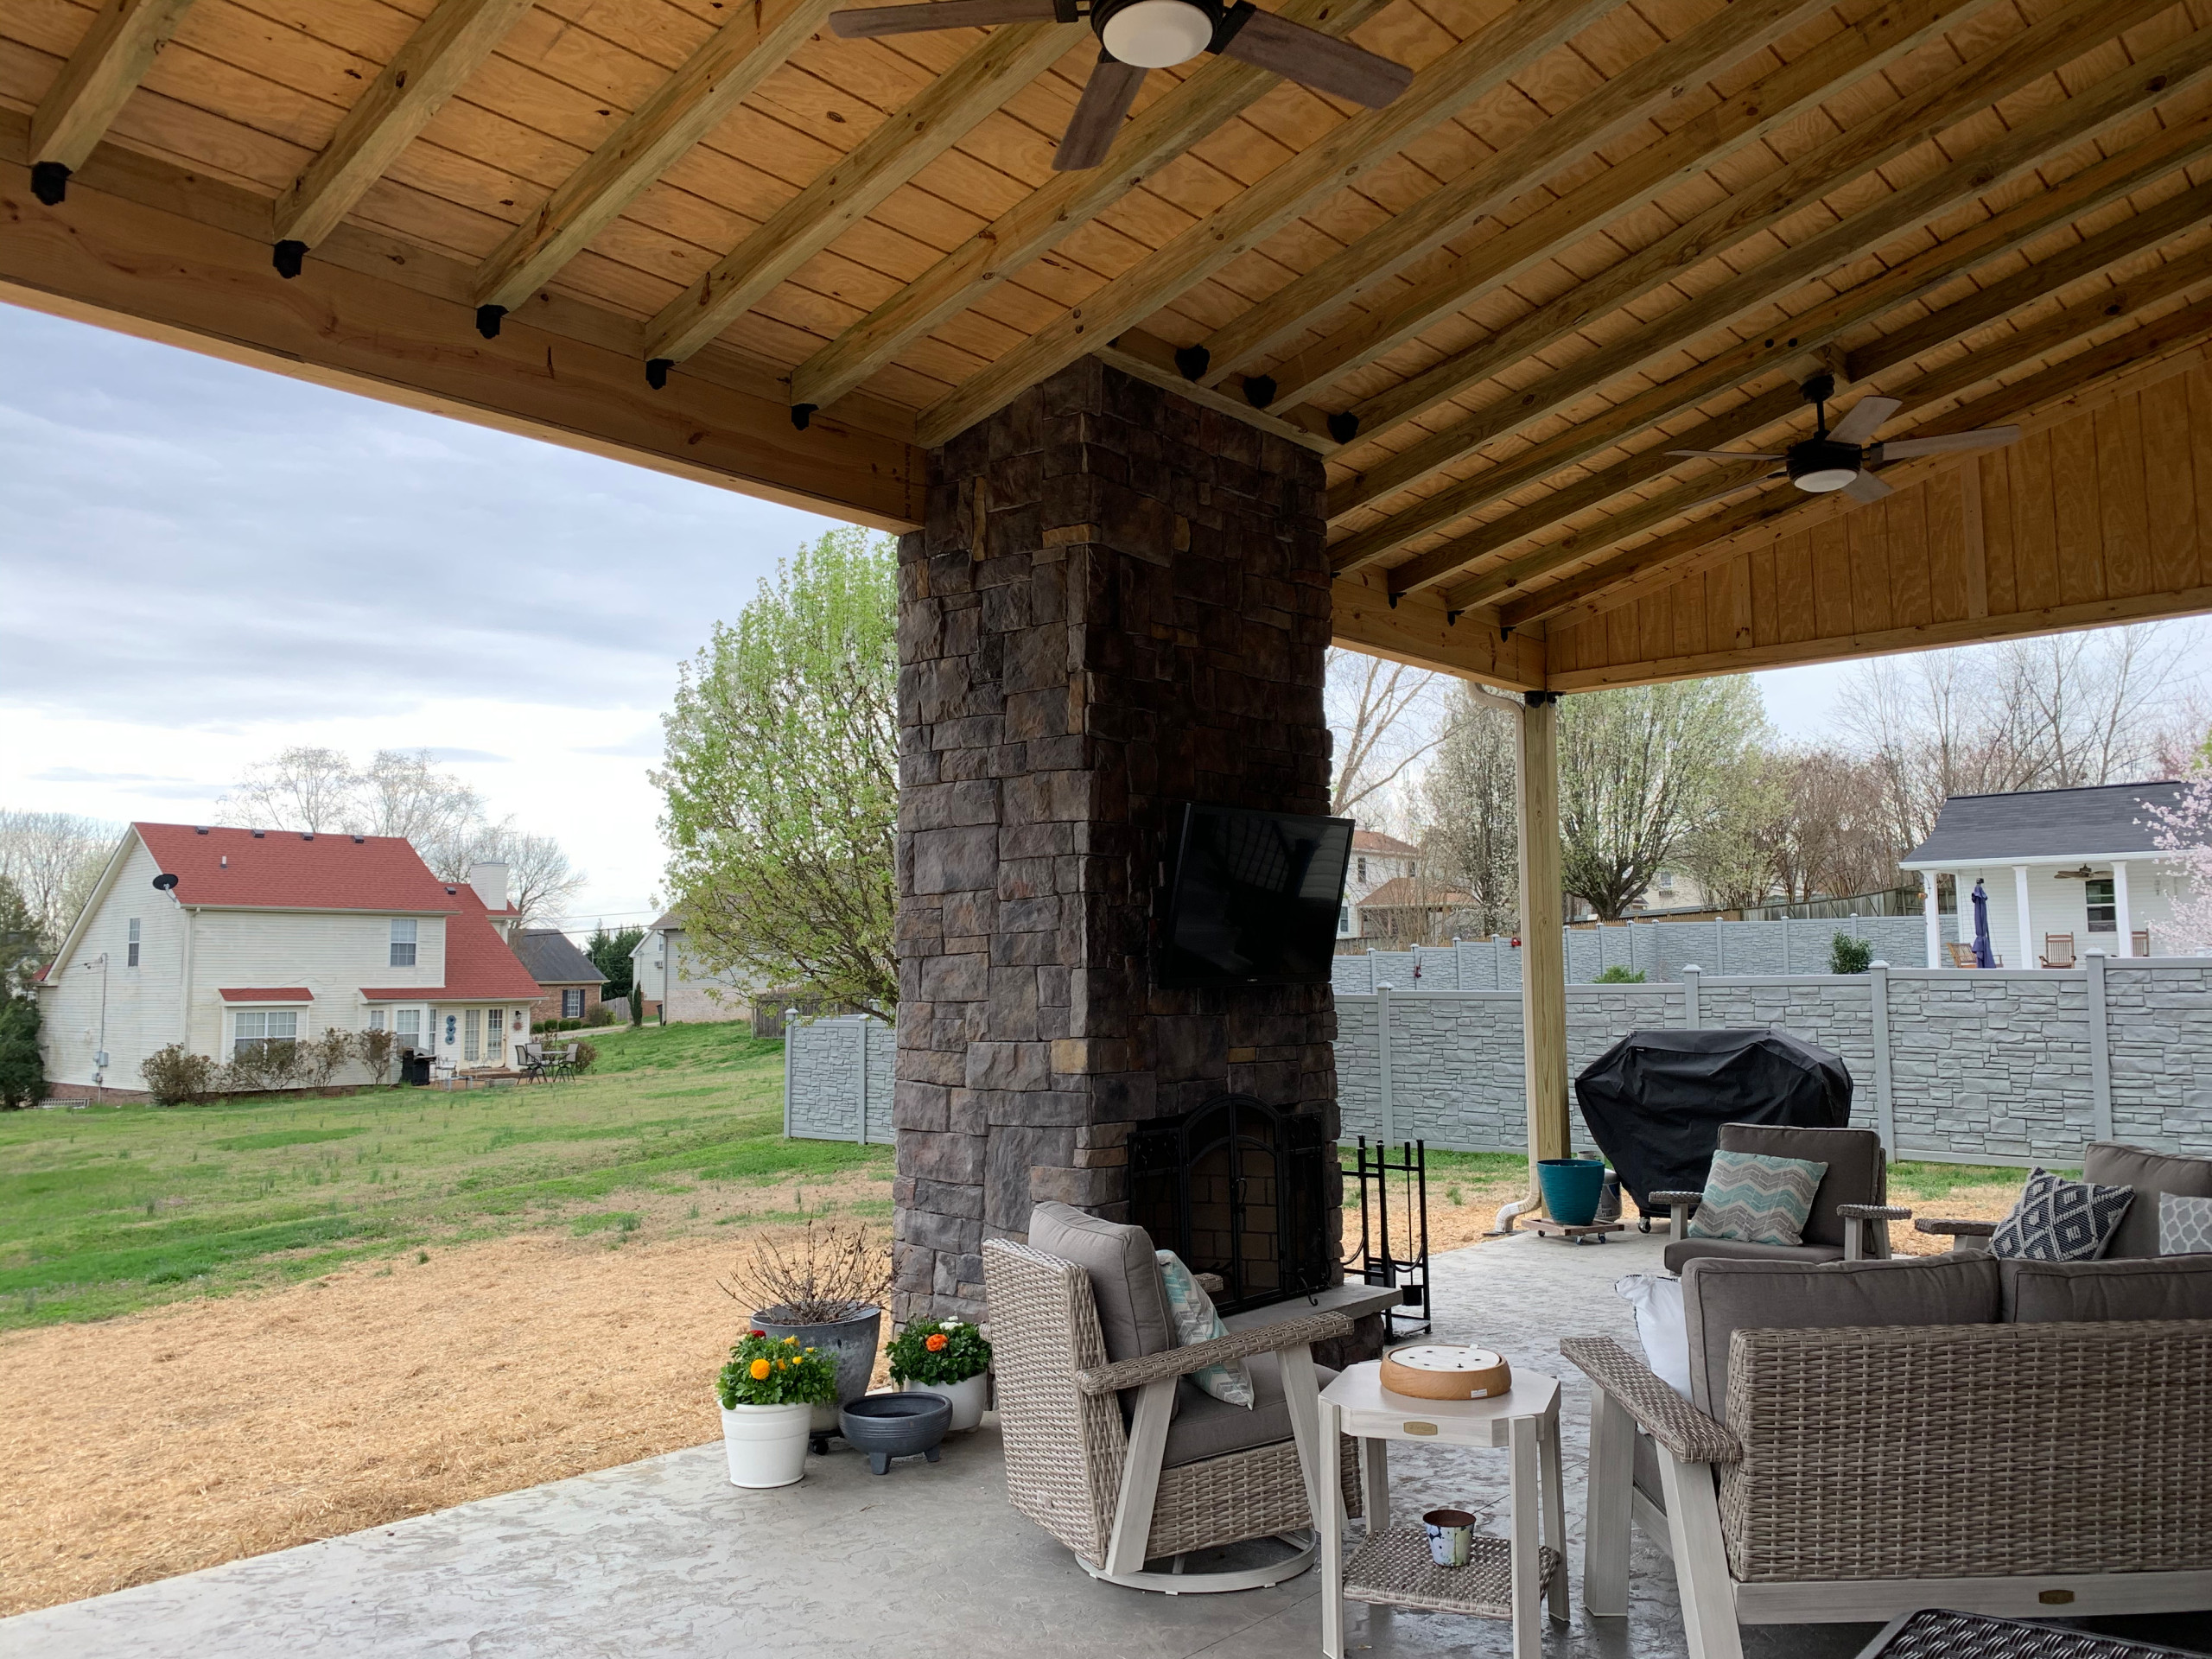 Shed roof Patio w/fireplace